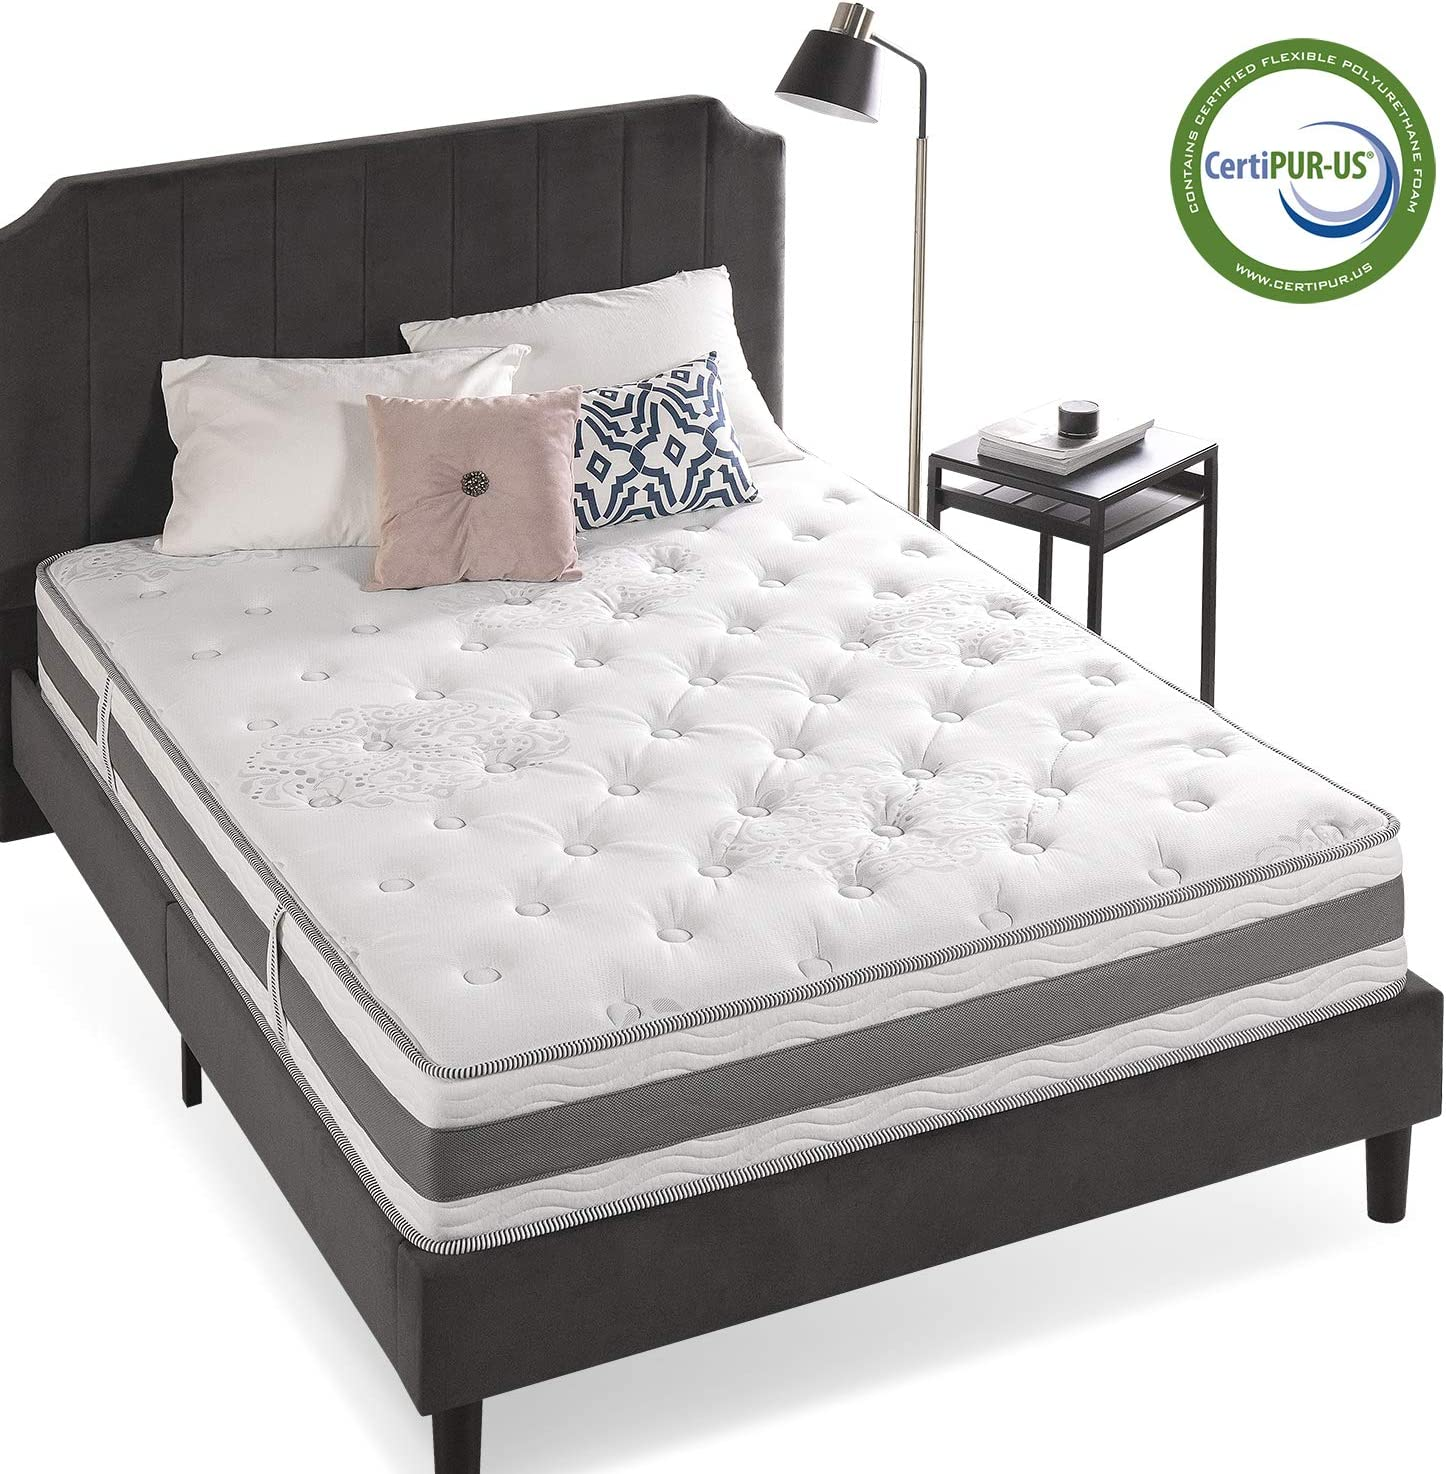 Zinus 10 Inch Gel-Infused Memory Foam Hybrid Mattress, King